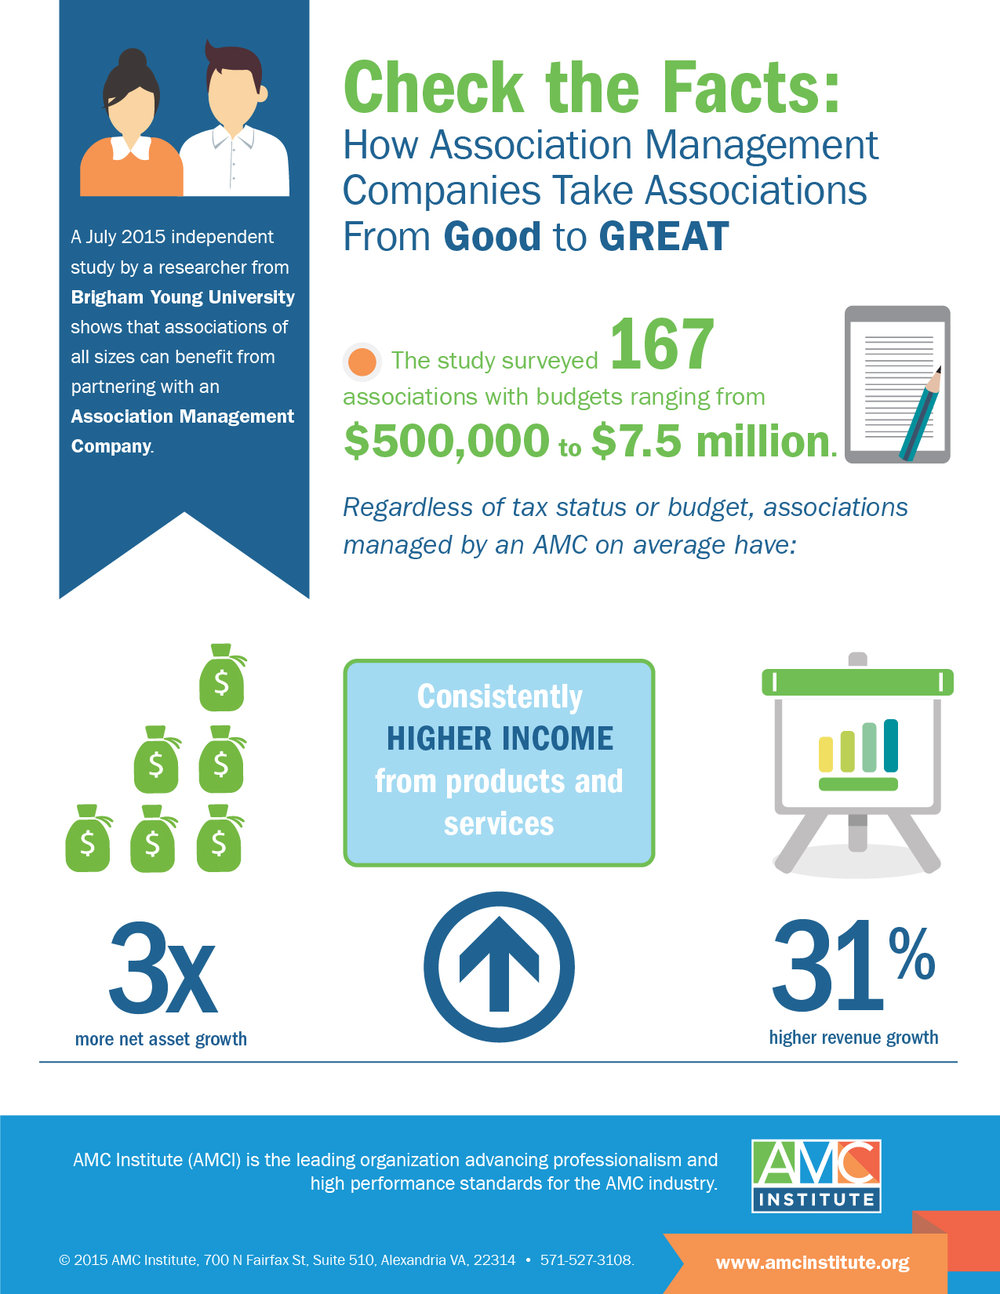 Infographic: How Association Management Companies Take Associations From Good to Great Click to view larger